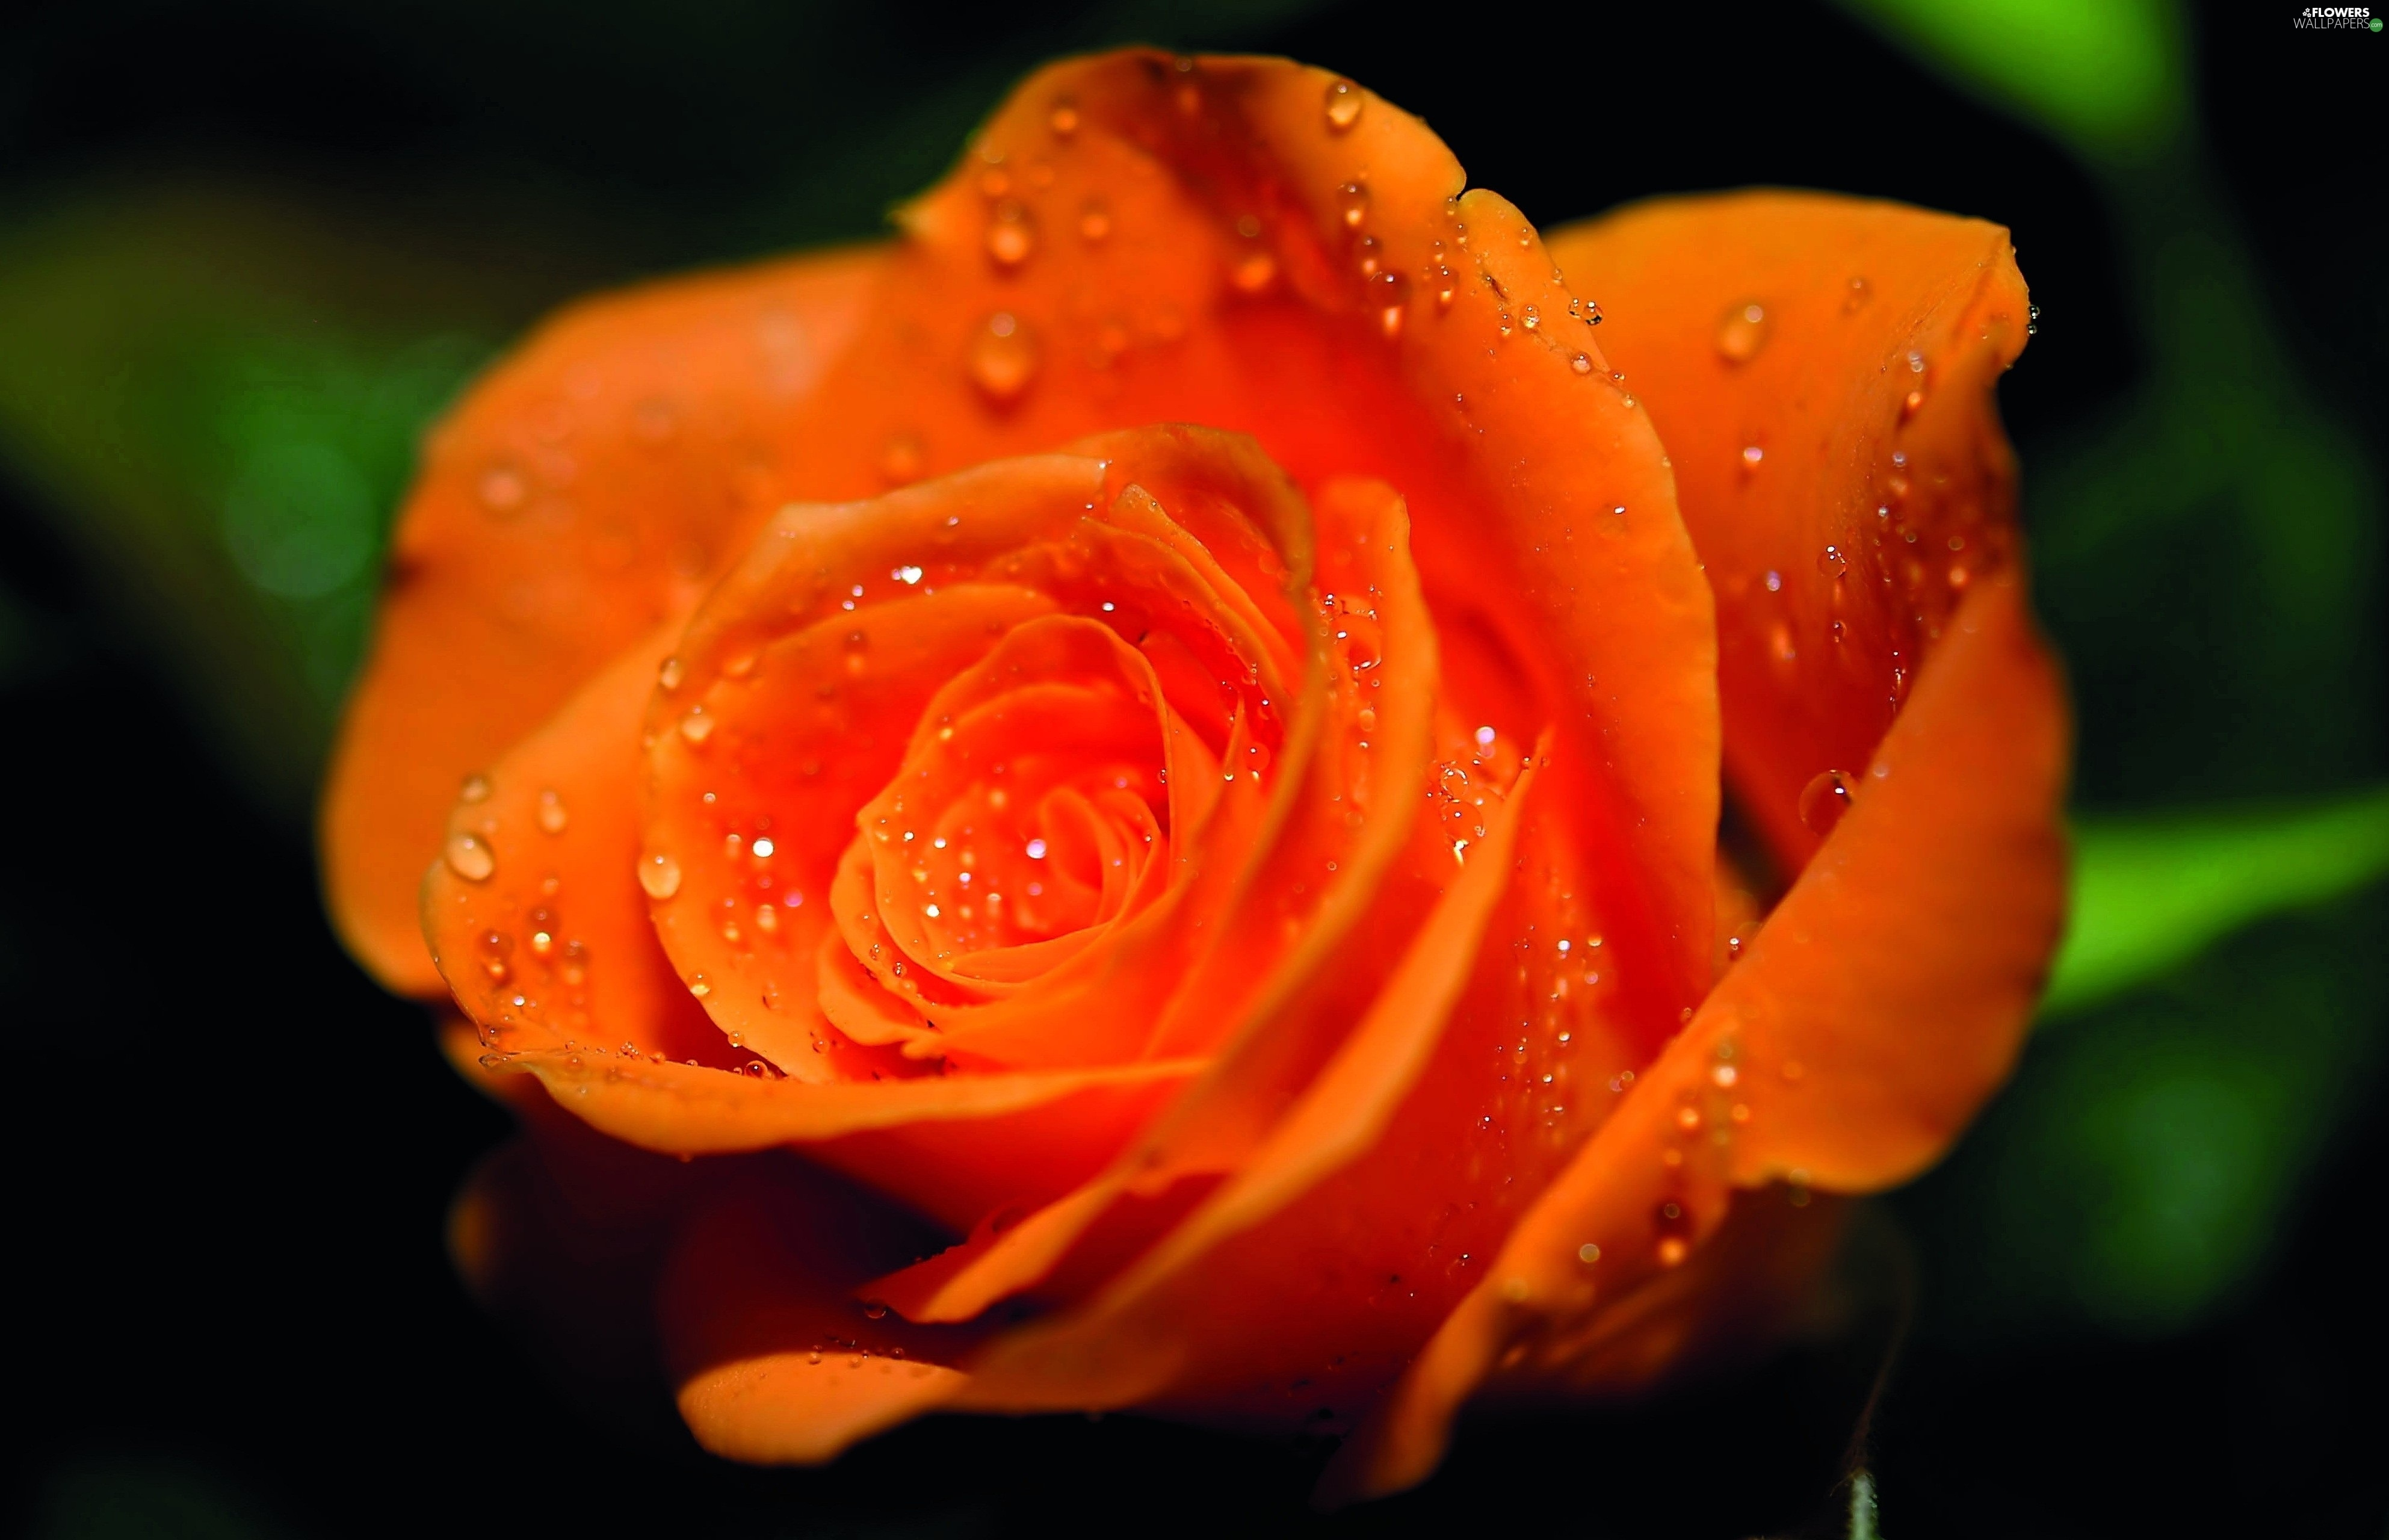 Orange, drops, Rosy, rose